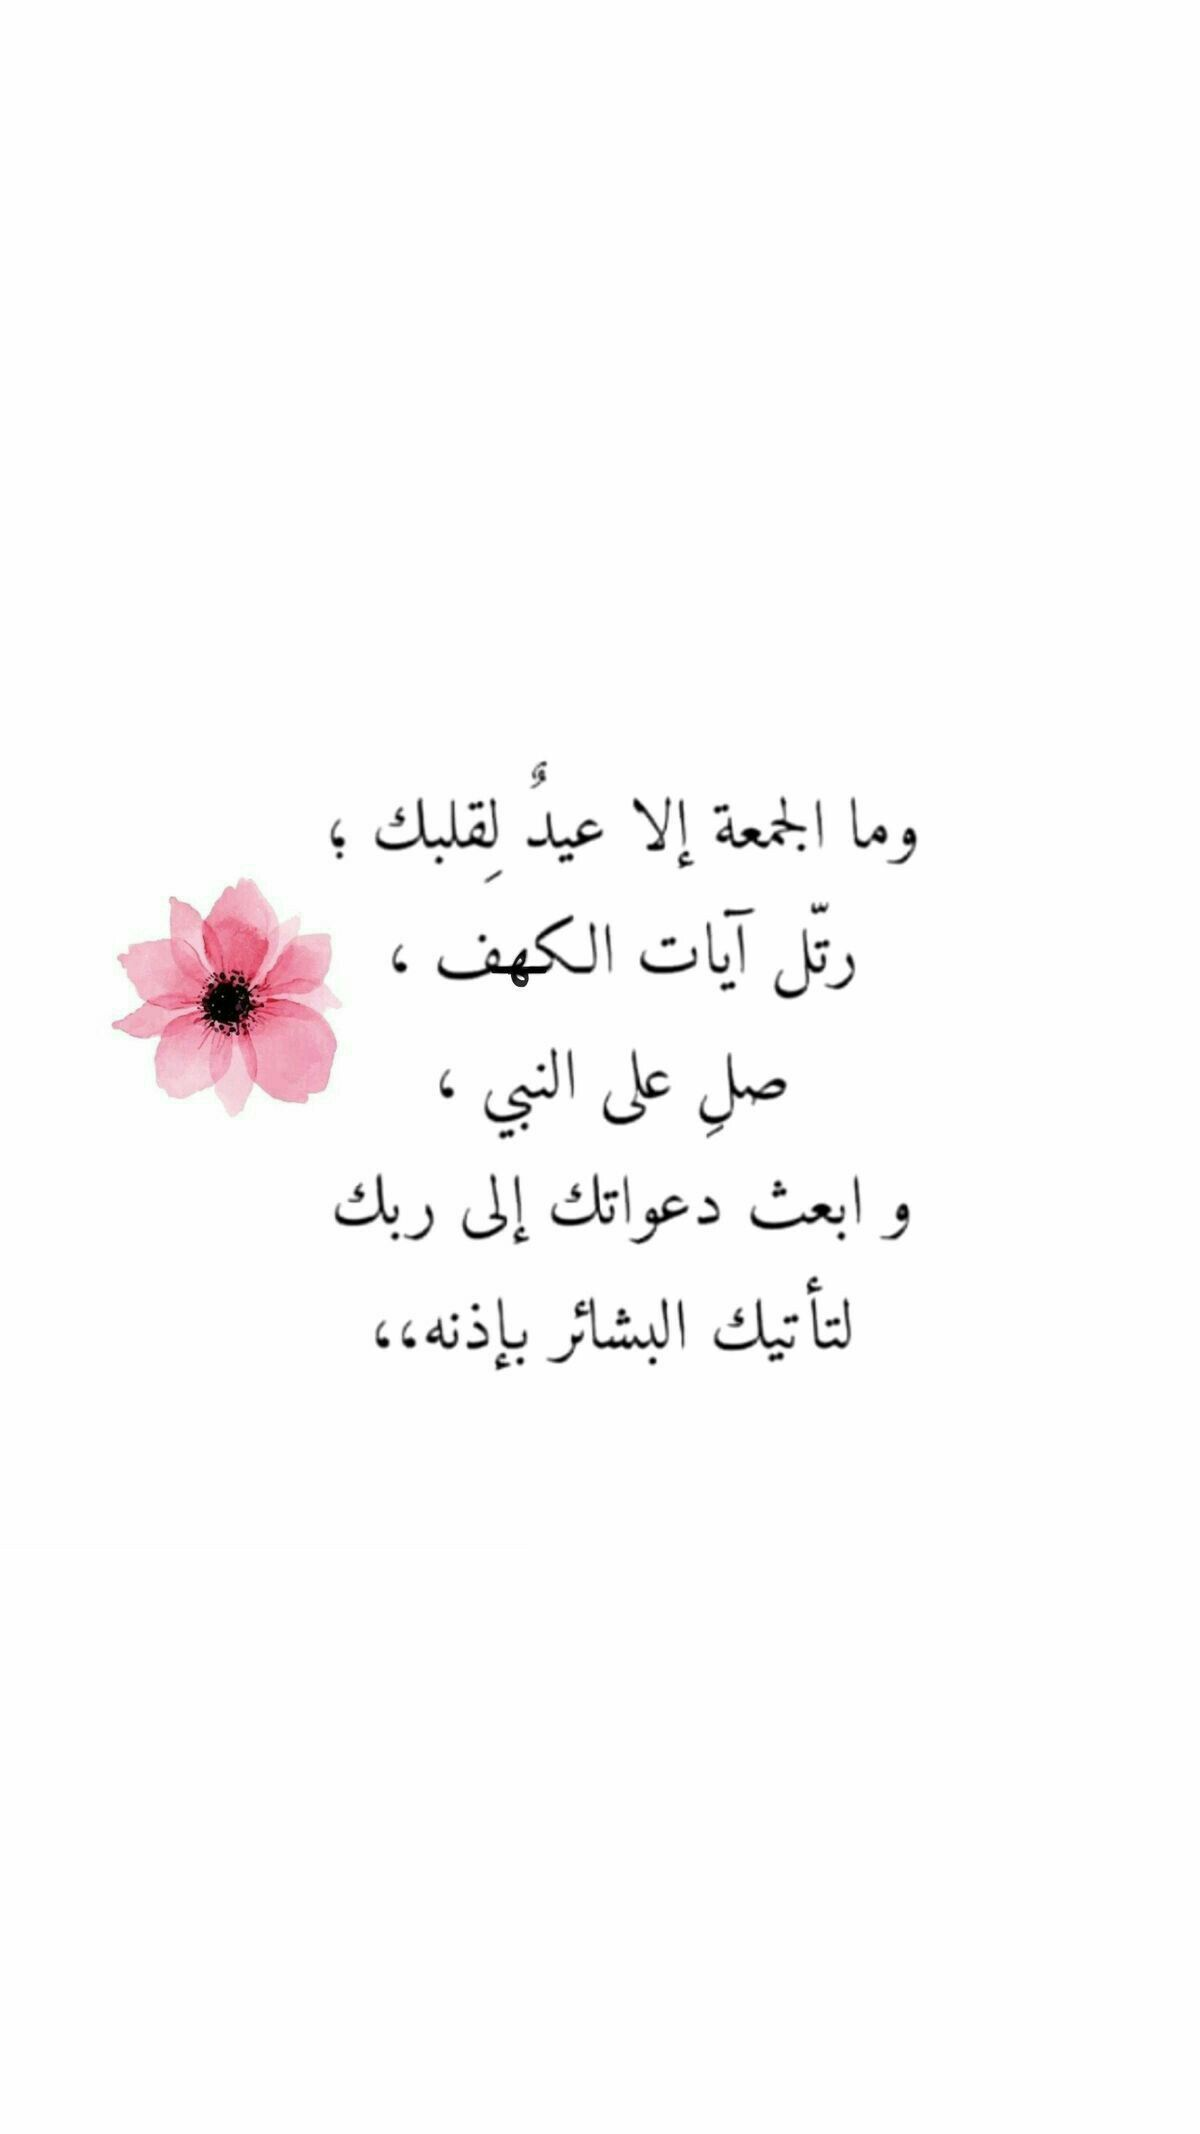 Pin By Robian Ataria On اسلاميات Quran Quotes Love Islamic Love Quotes Beautiful Quran Quotes